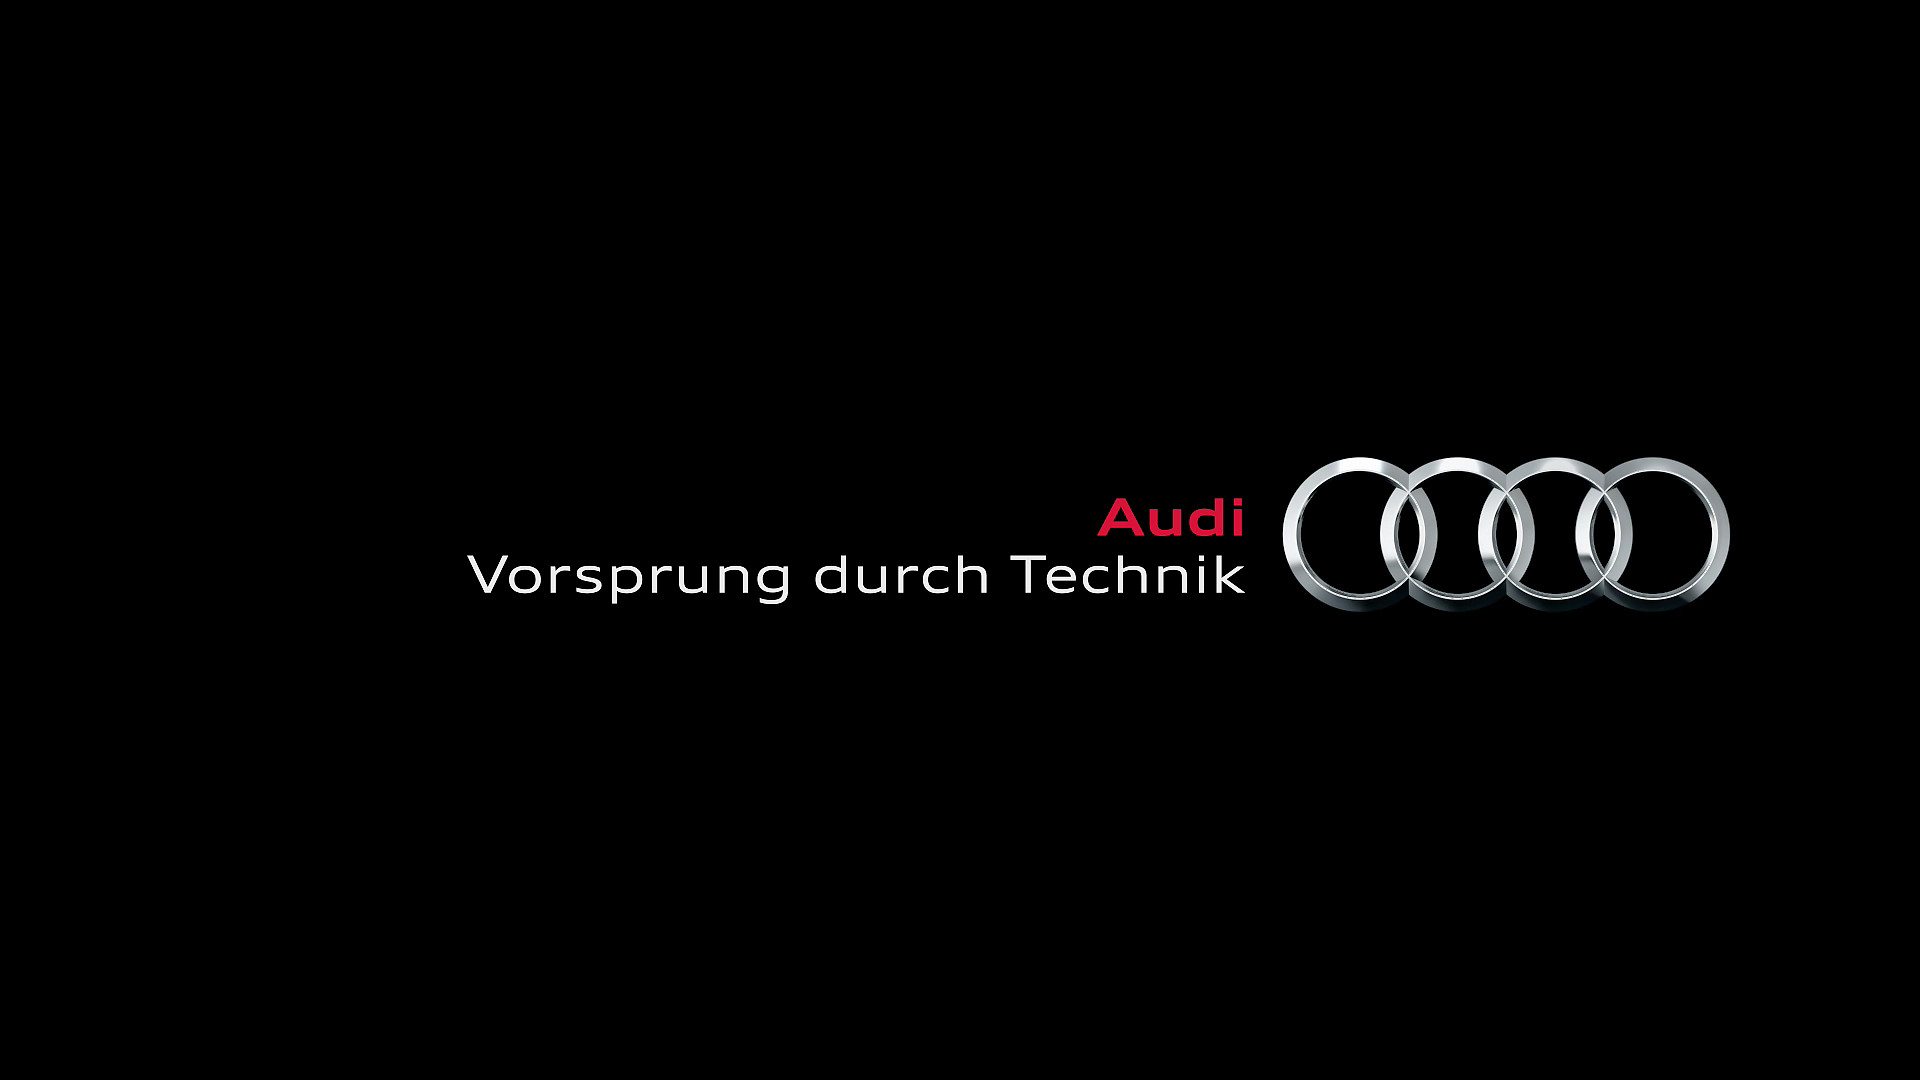 audi logo wallpapers 183��